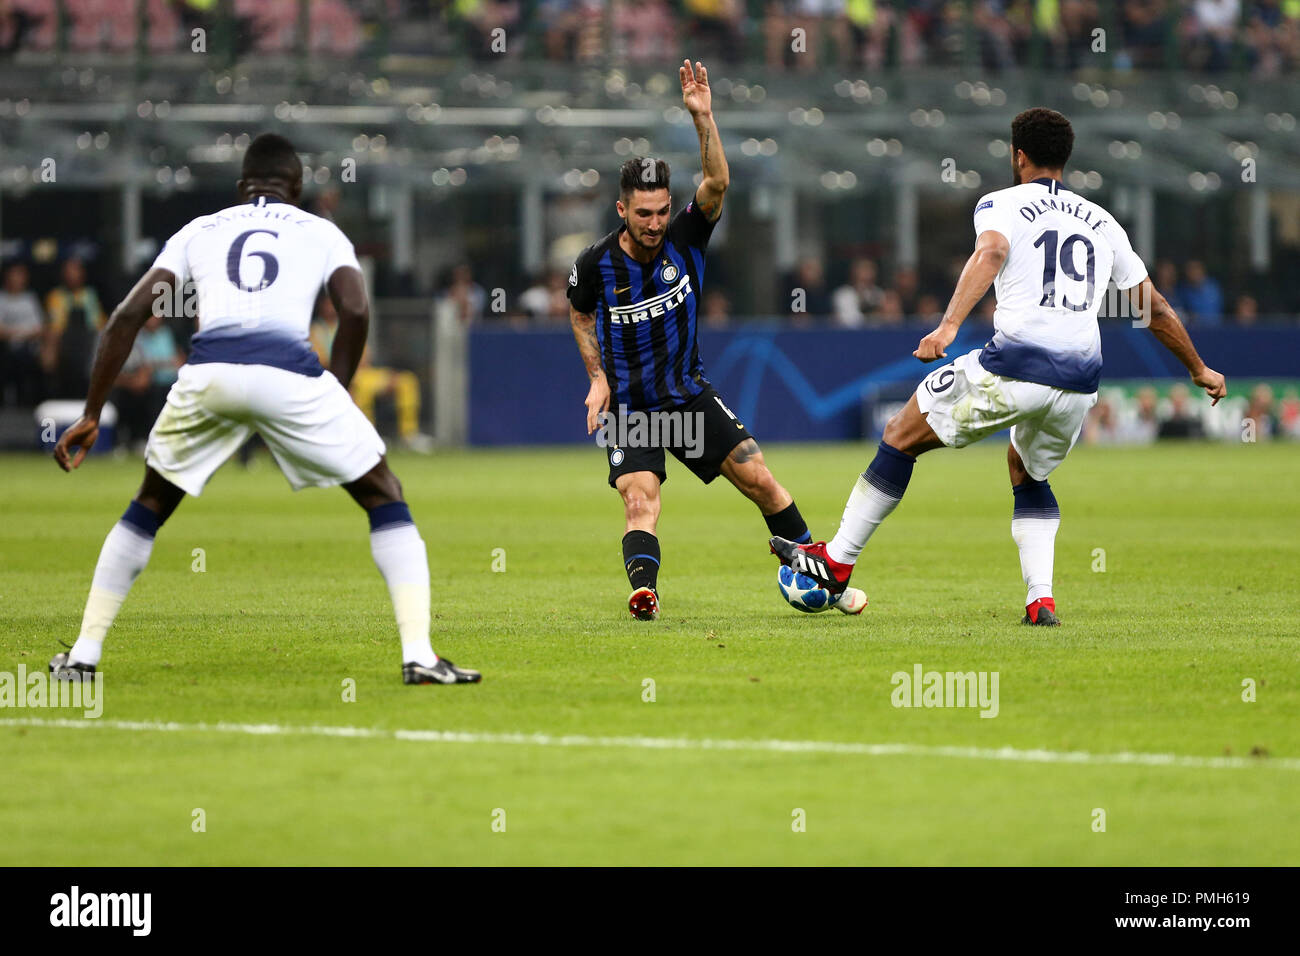 Milano, Italy. 18th September, 2018.  Moussa Dembele' of Tottenham Hotspur Fc and   Matteo Politano of FC Internazionale in action during Uefa Champions League  Group B match  between FC Internazionale and Tottenham Hotspur Fc. Credit: Marco Canoniero/Alamy Live News - Stock Image